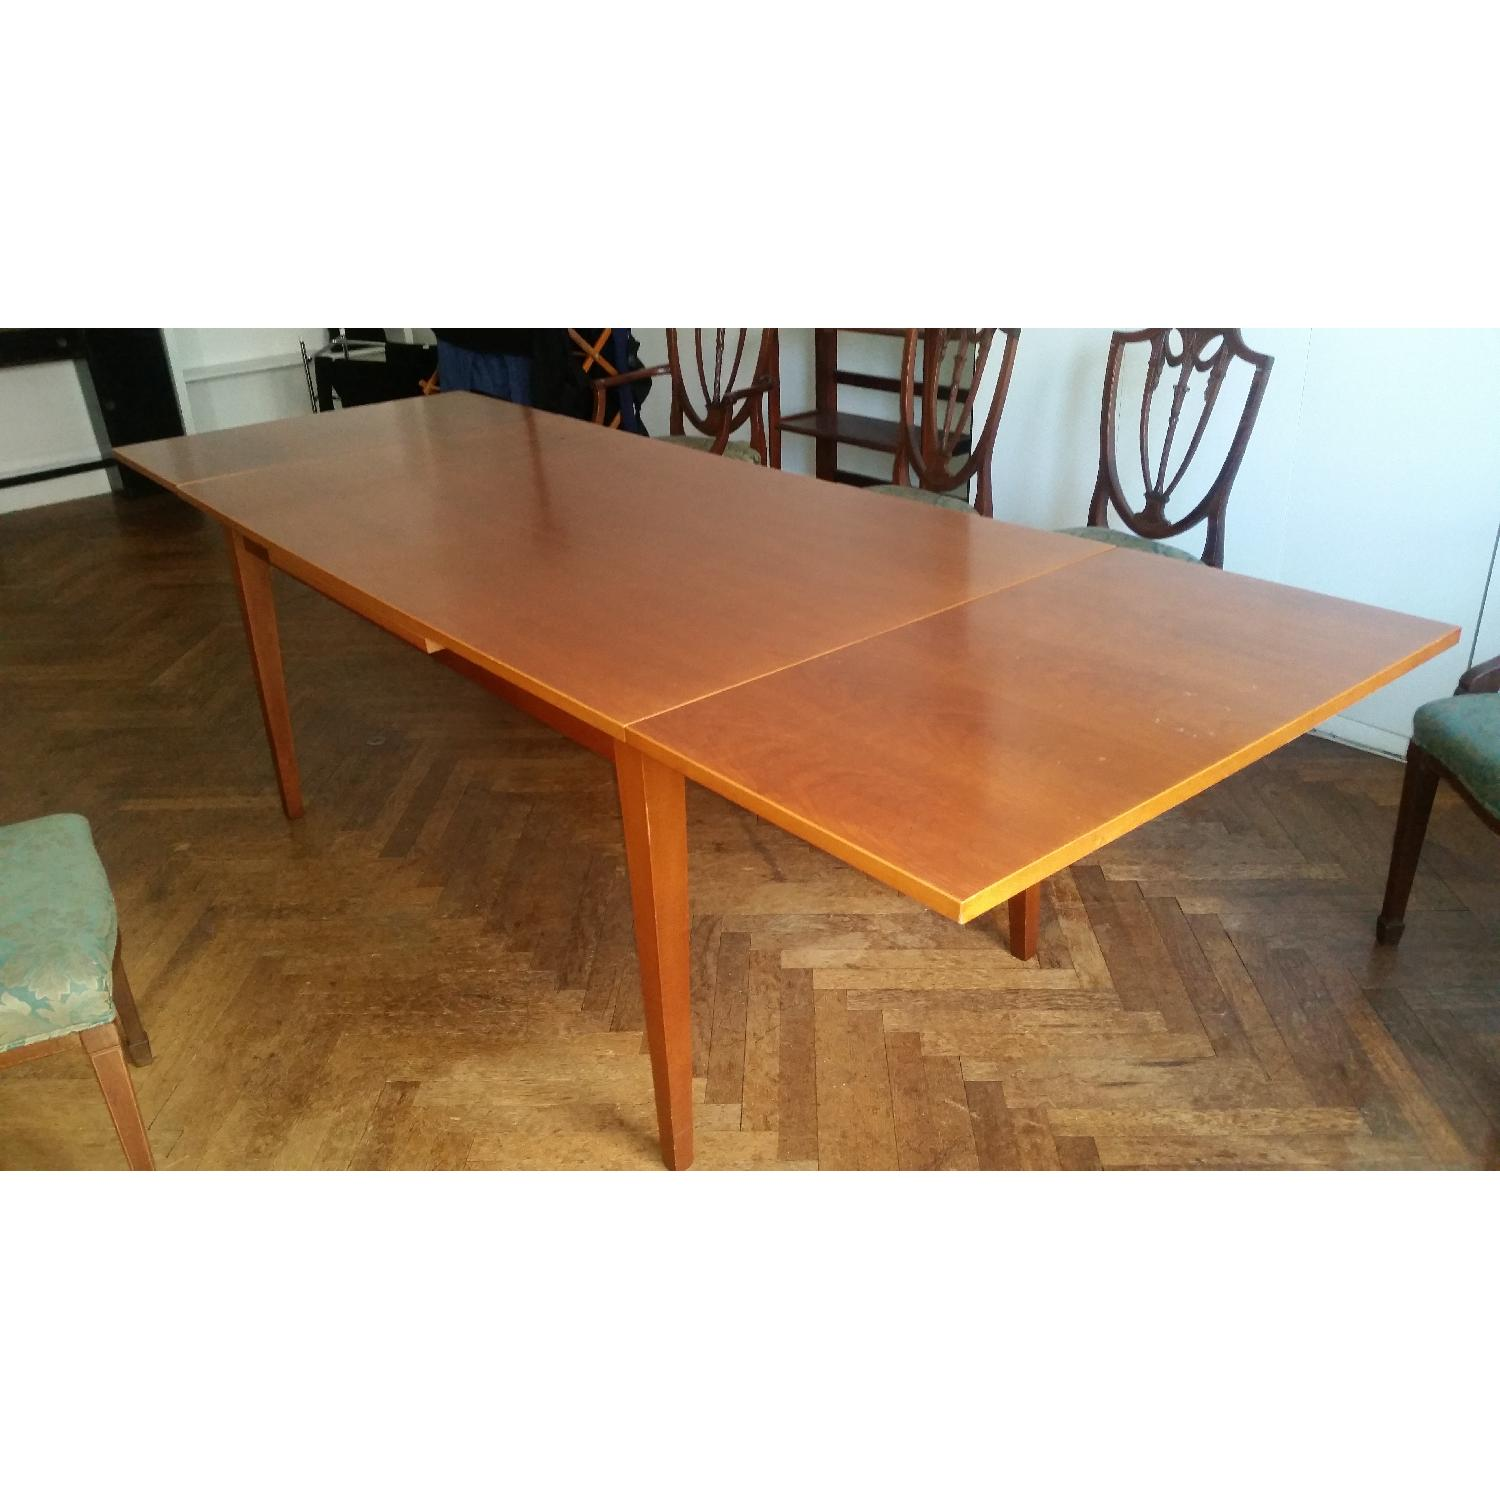 Fruit Wood Draw-Leaf Extension Table - image-2